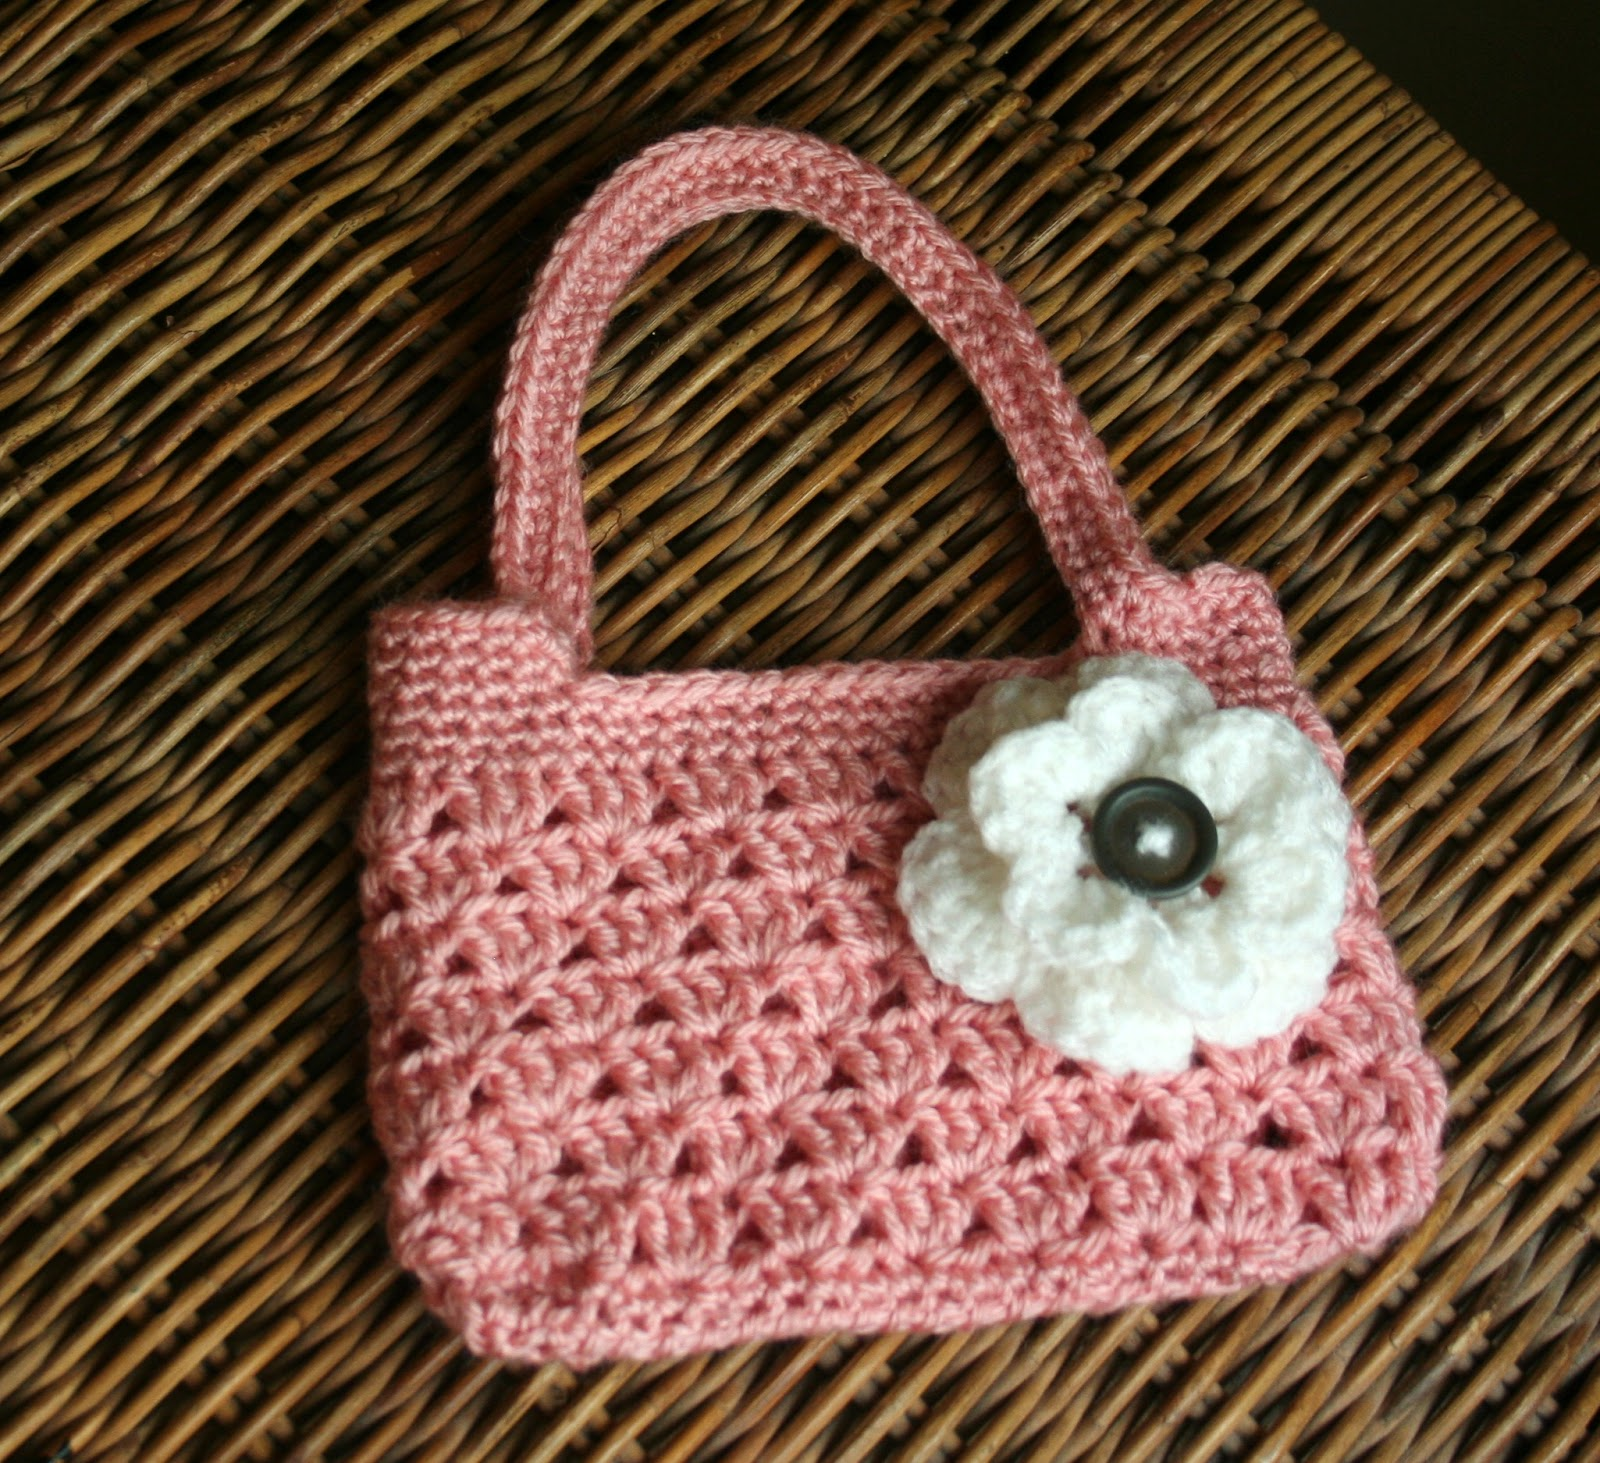 Crochet Baby Purse : Tampa Bay Crochet: Free Easy Crochet Purse Pattern